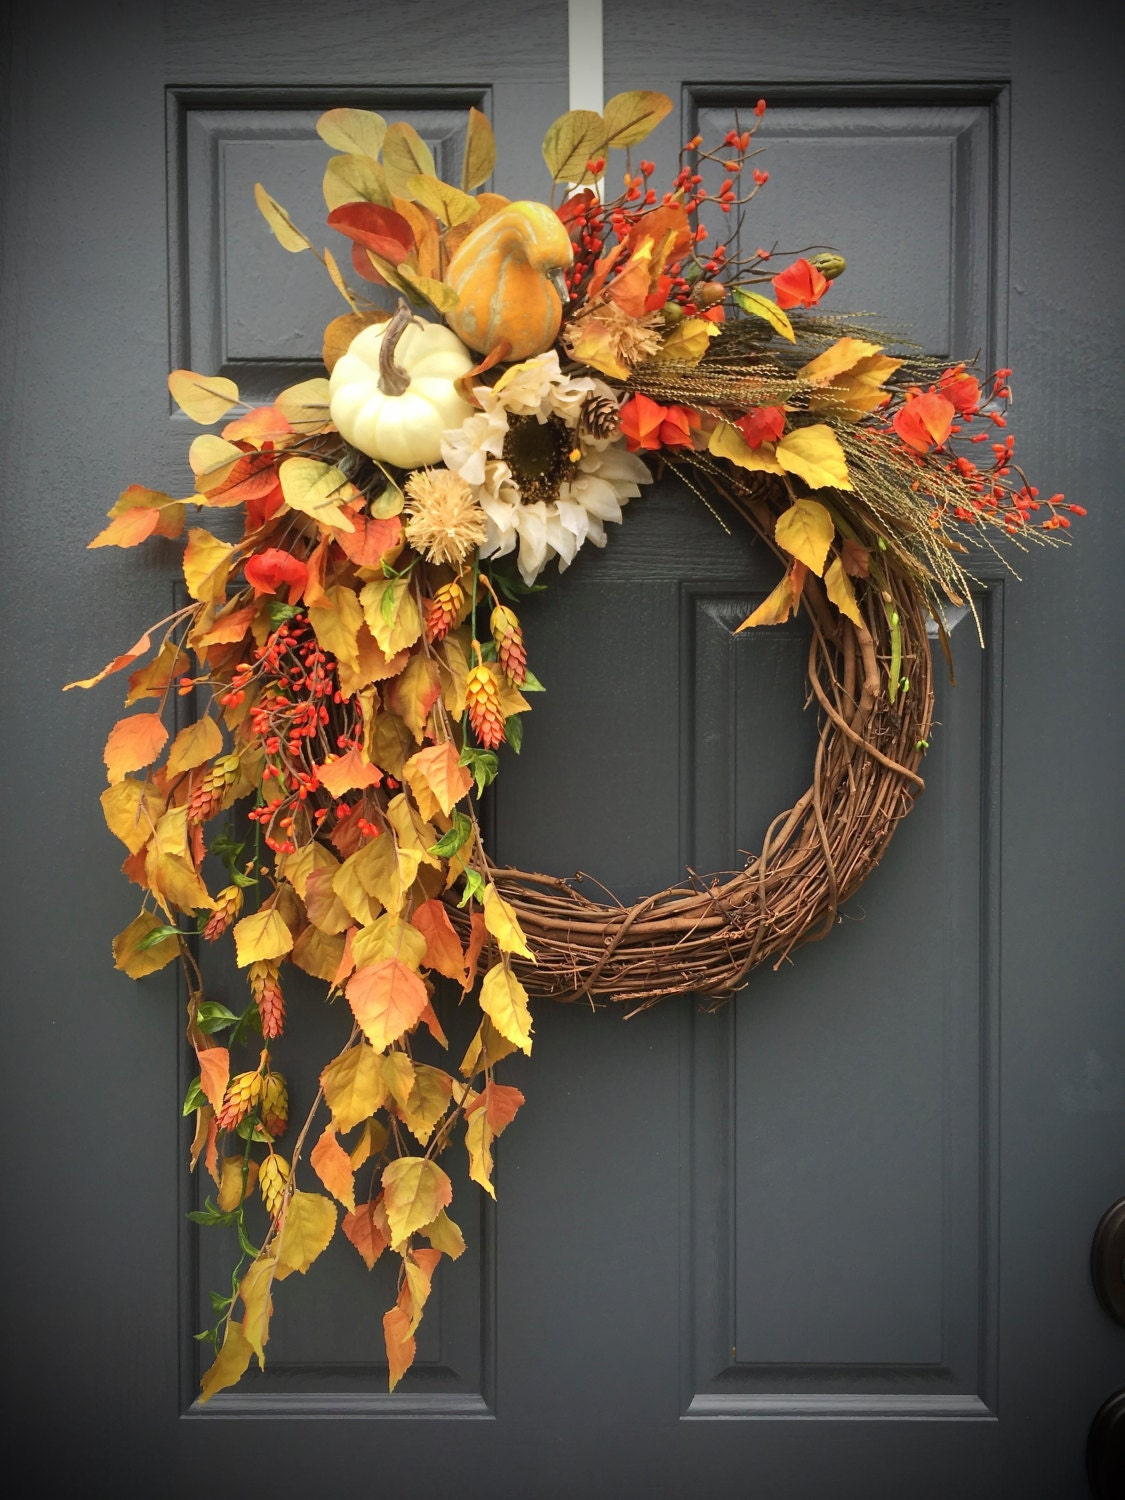 Fall wreaths fall door wreaths wreaths for fall fall decor Fall autumn door wreaths